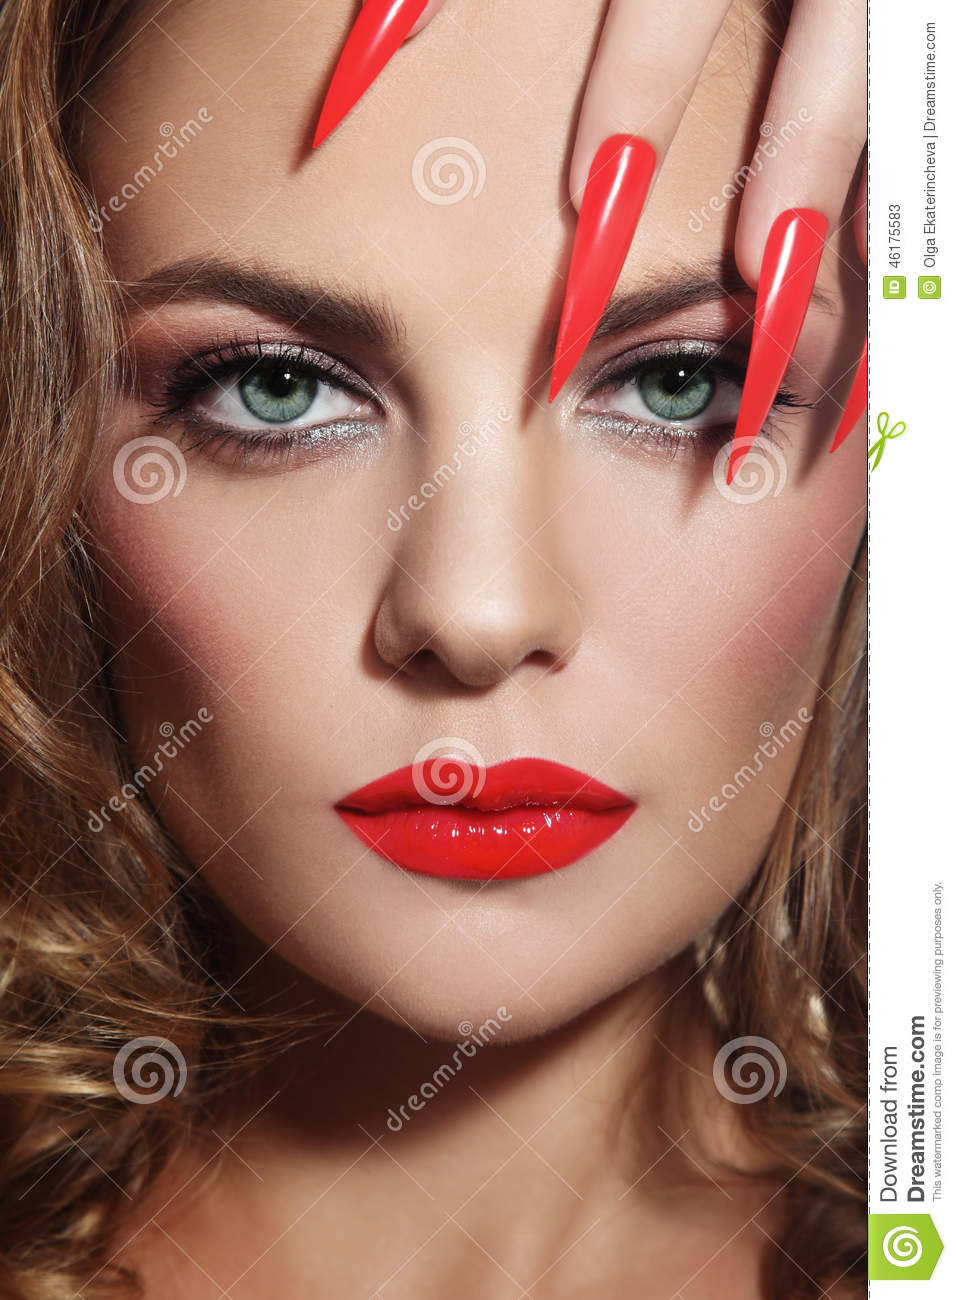 Stiletto Nails Close Up Portrait Young Beautiful Woman Red Lipstick Long